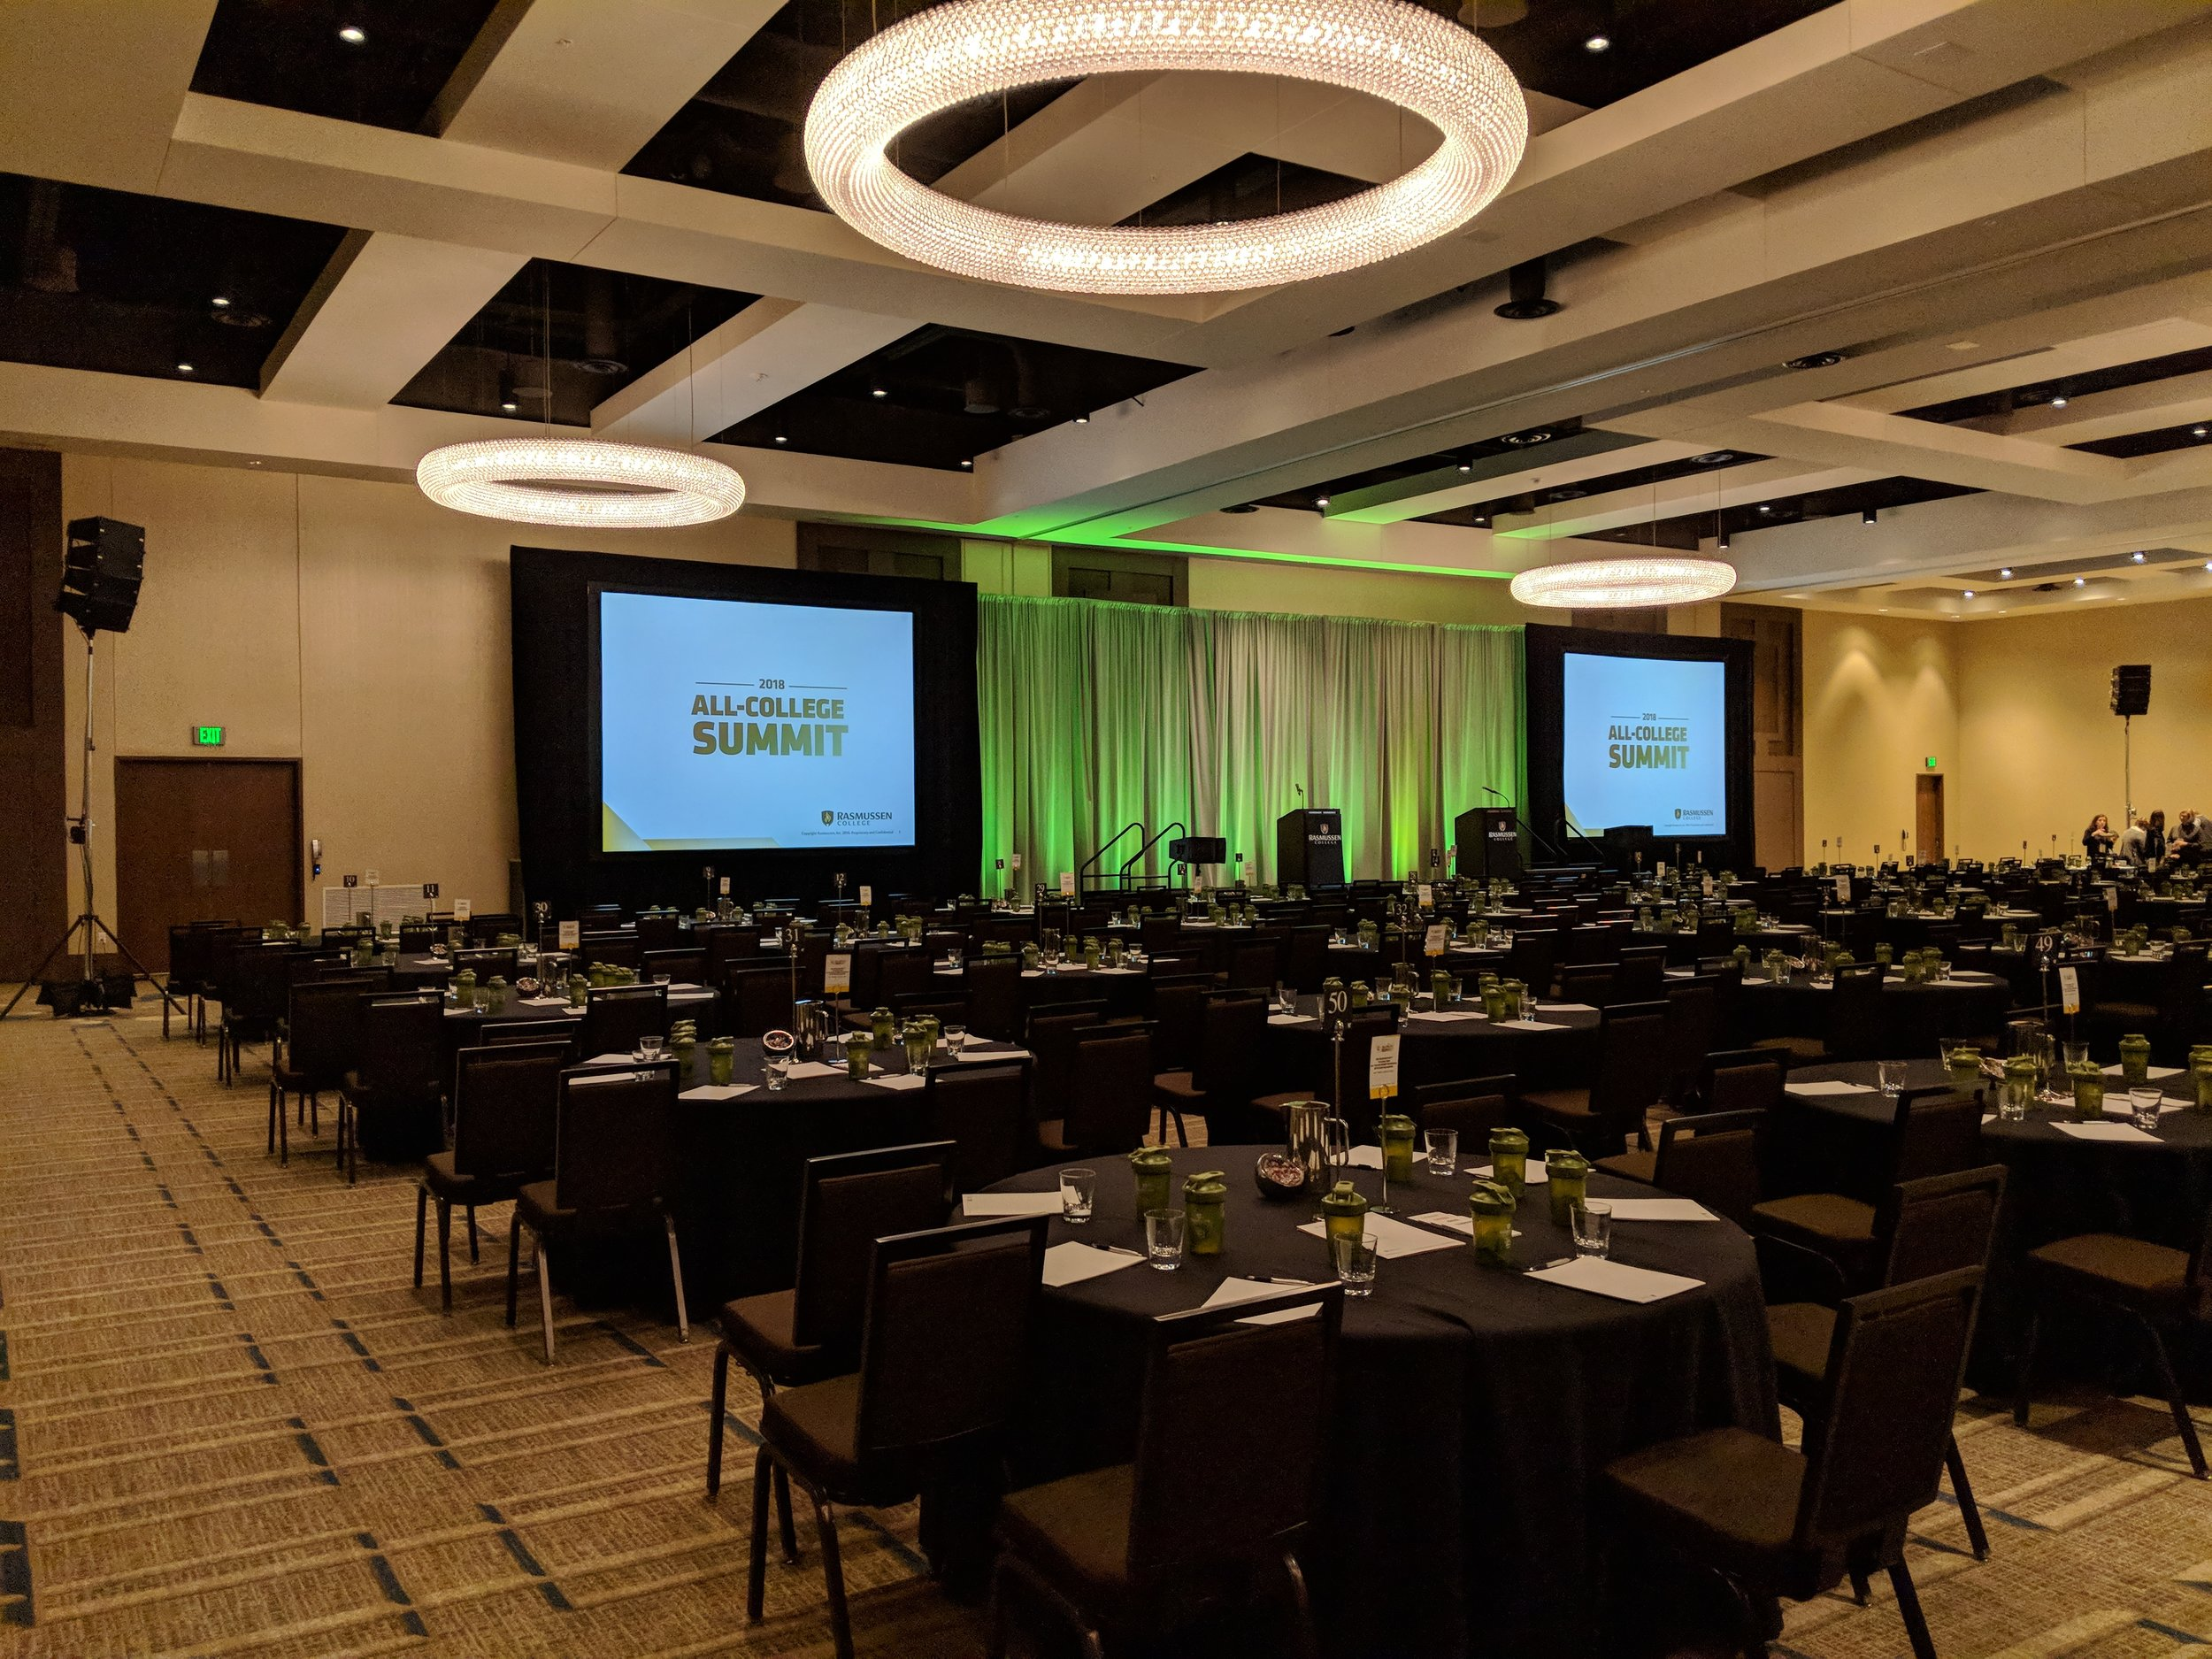 Picture of AV for You's rental gear in action at the JW Marriott in Bloomington, MN